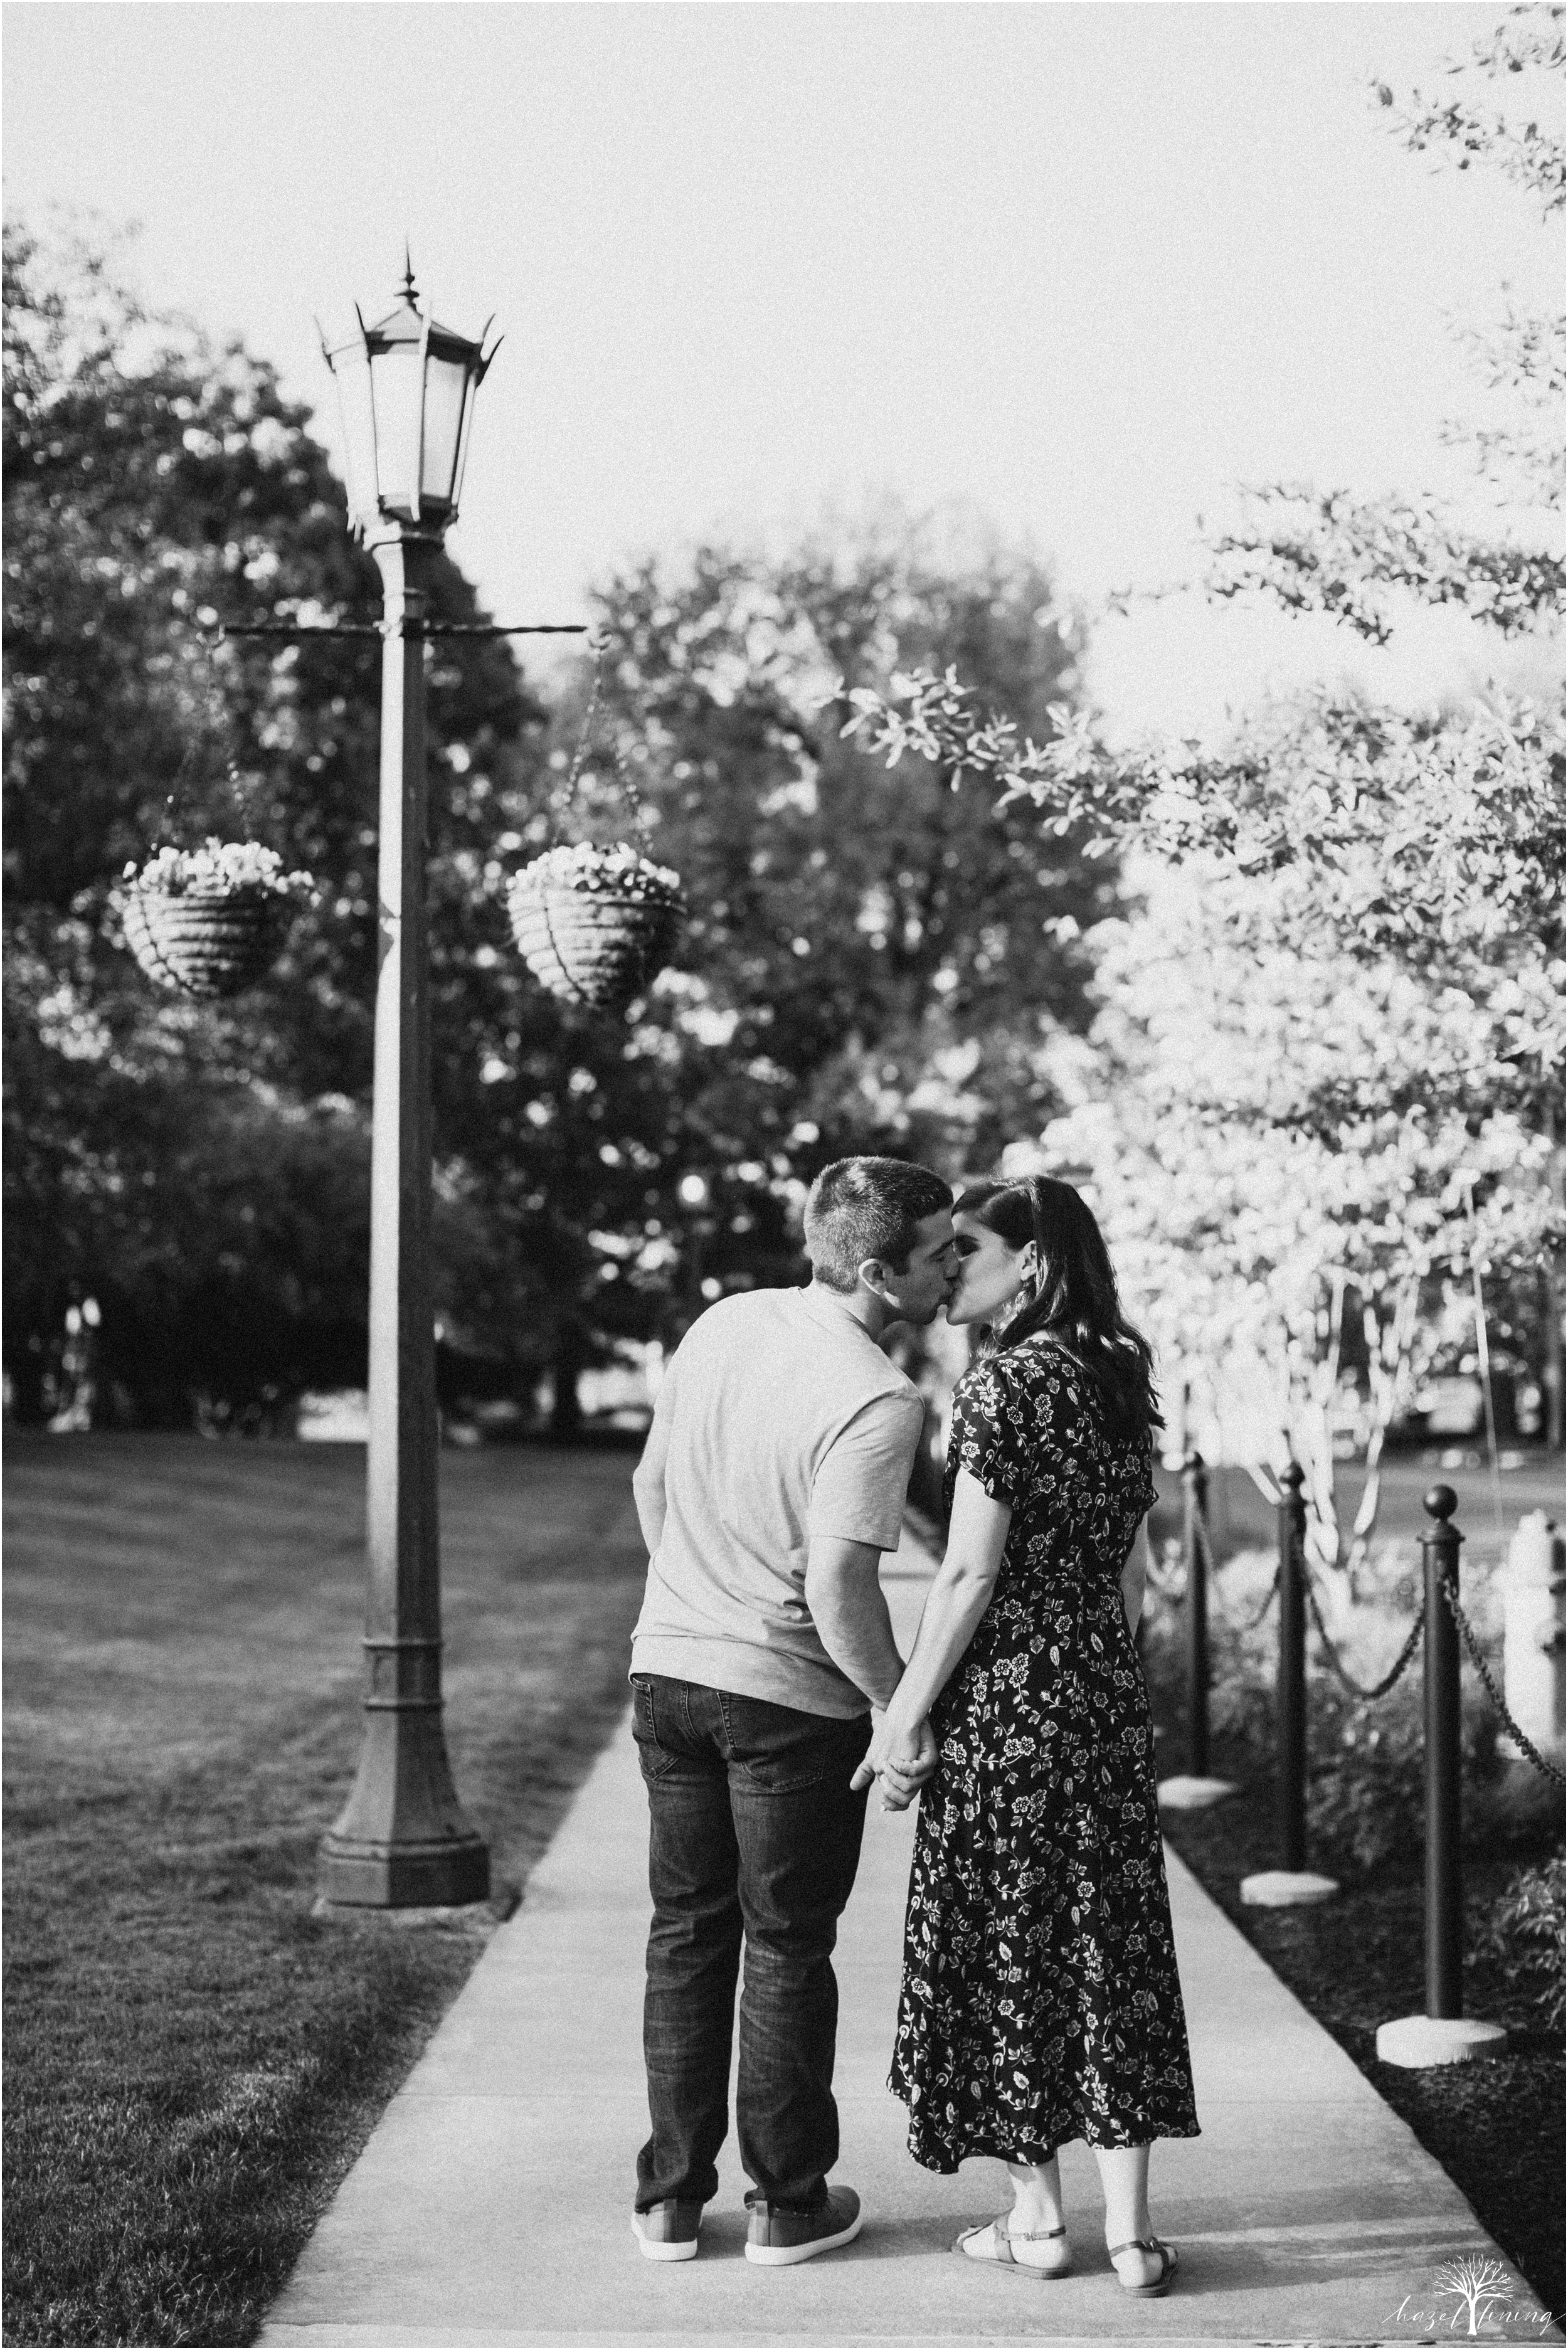 ellyn-jack-kutztown-university-of-pennsylvania-engagement-session-hazel-lining-photography-destination-elopement-wedding-engagement-photography_0235.jpg